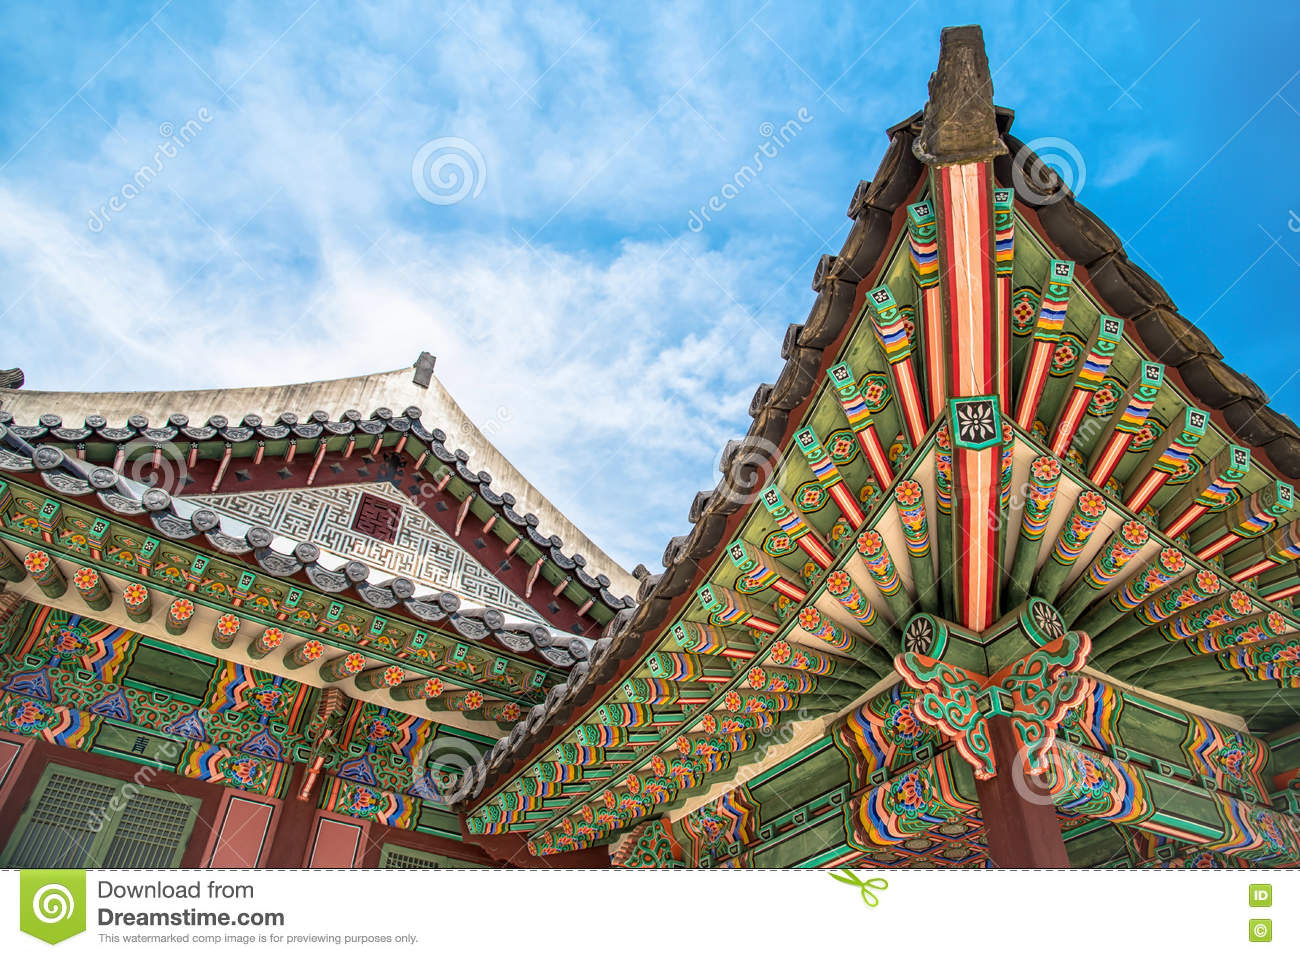 Details Of Korean Traditional Roofing Architecture In Changdeokgung Palace  Stock Photo